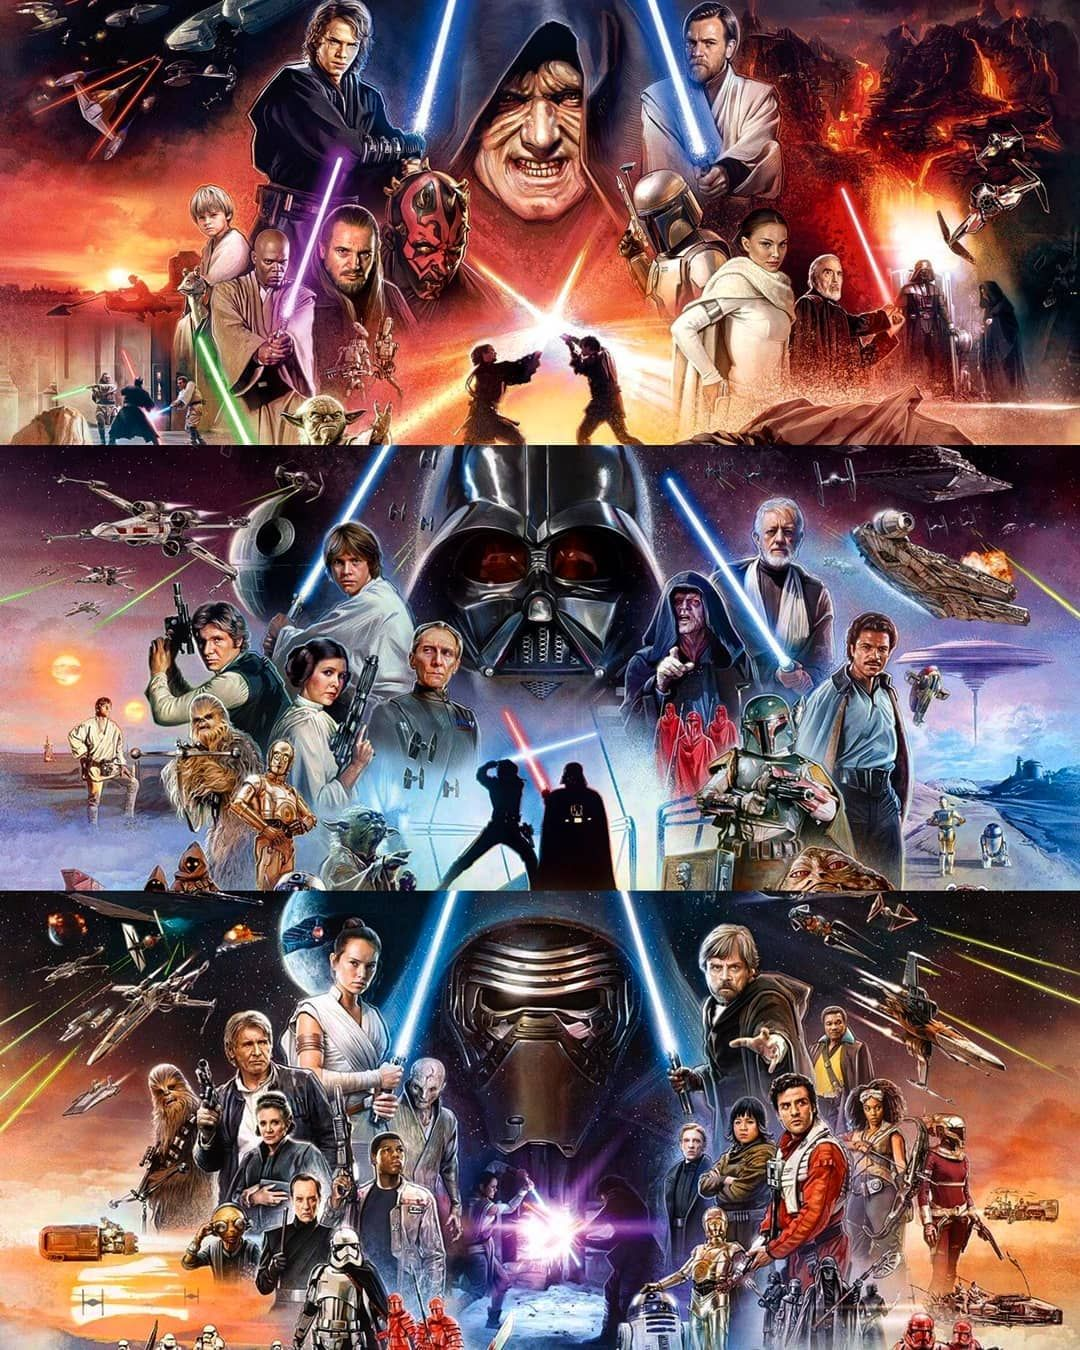 Awesome Looking Star Wars Artwork Bringing All Three Trilogy Storylines Into Play Starwars Starwarsart Star Wars Pictures Star Wars Artwork Star Wars Poster